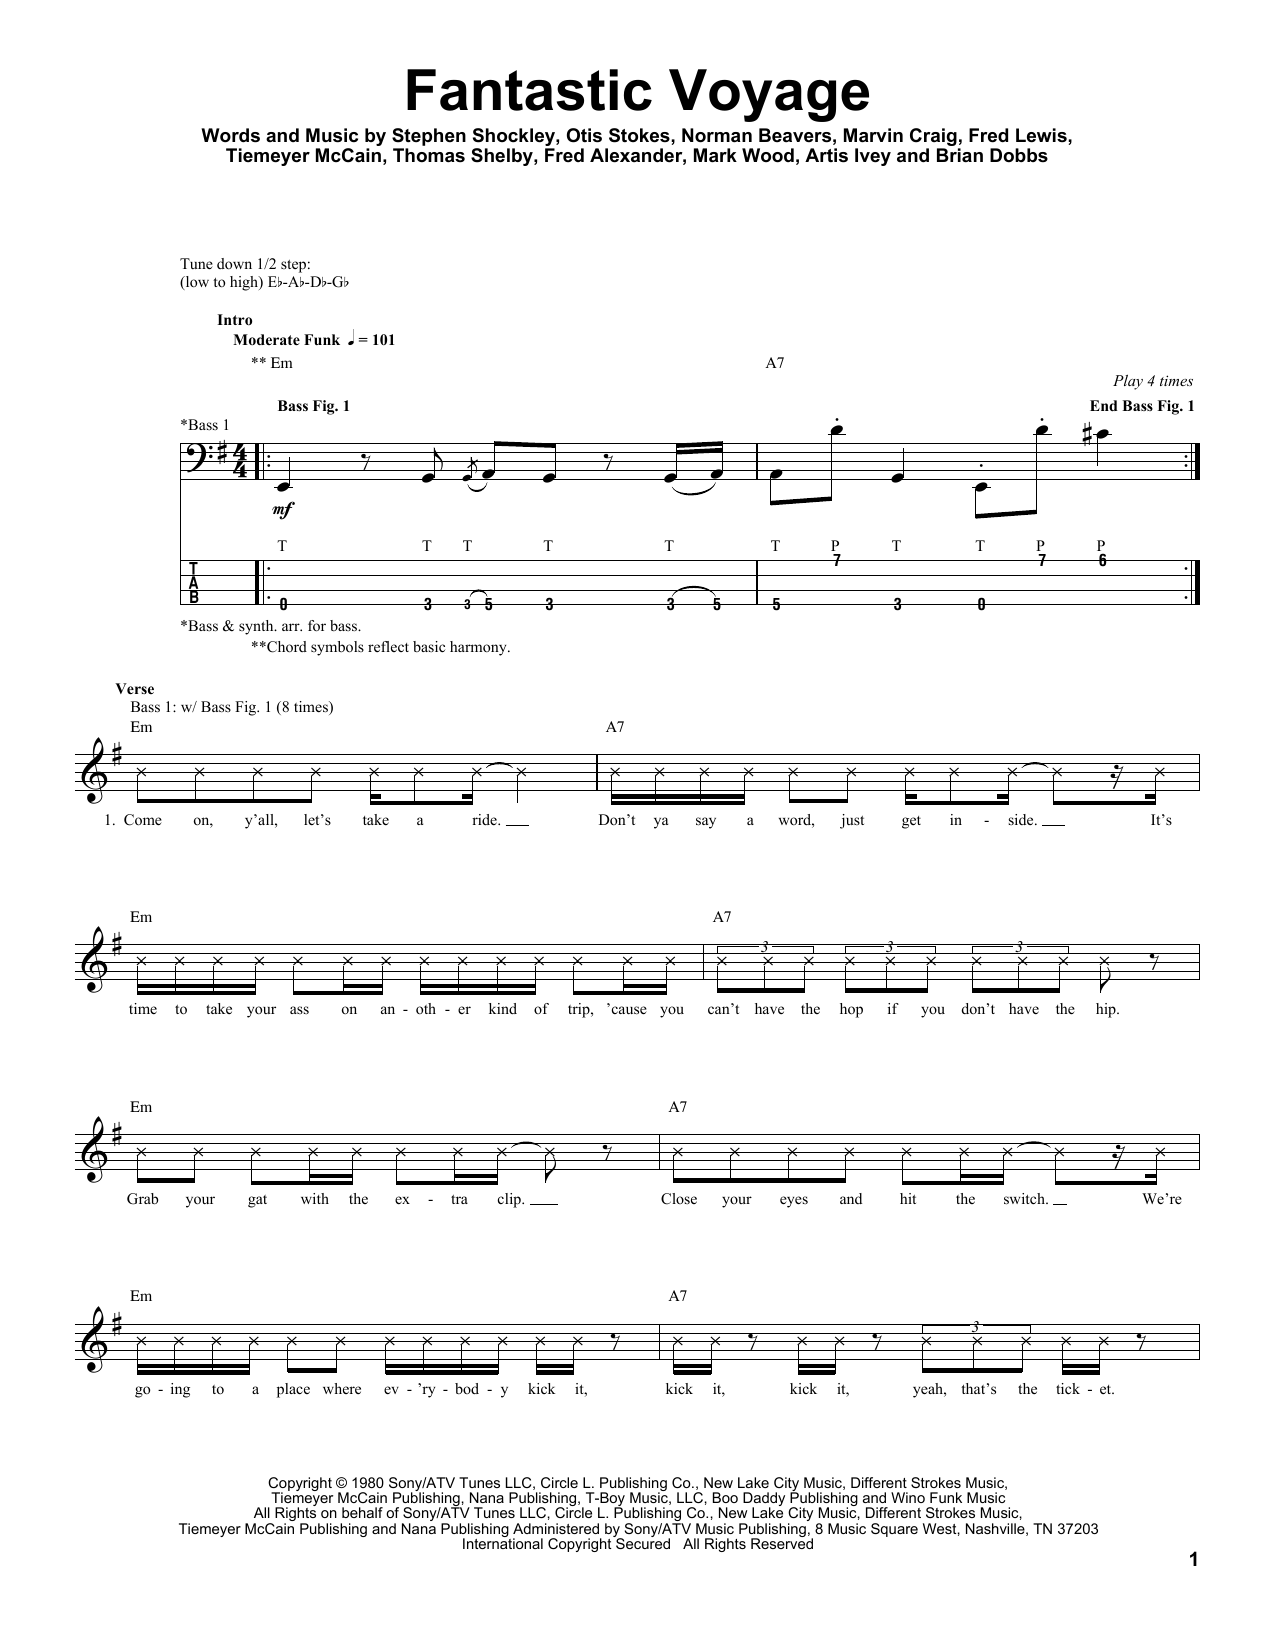 Download Coolio 'Fantastic Voyage' Digital Sheet Music Notes & Chords and start playing in minutes